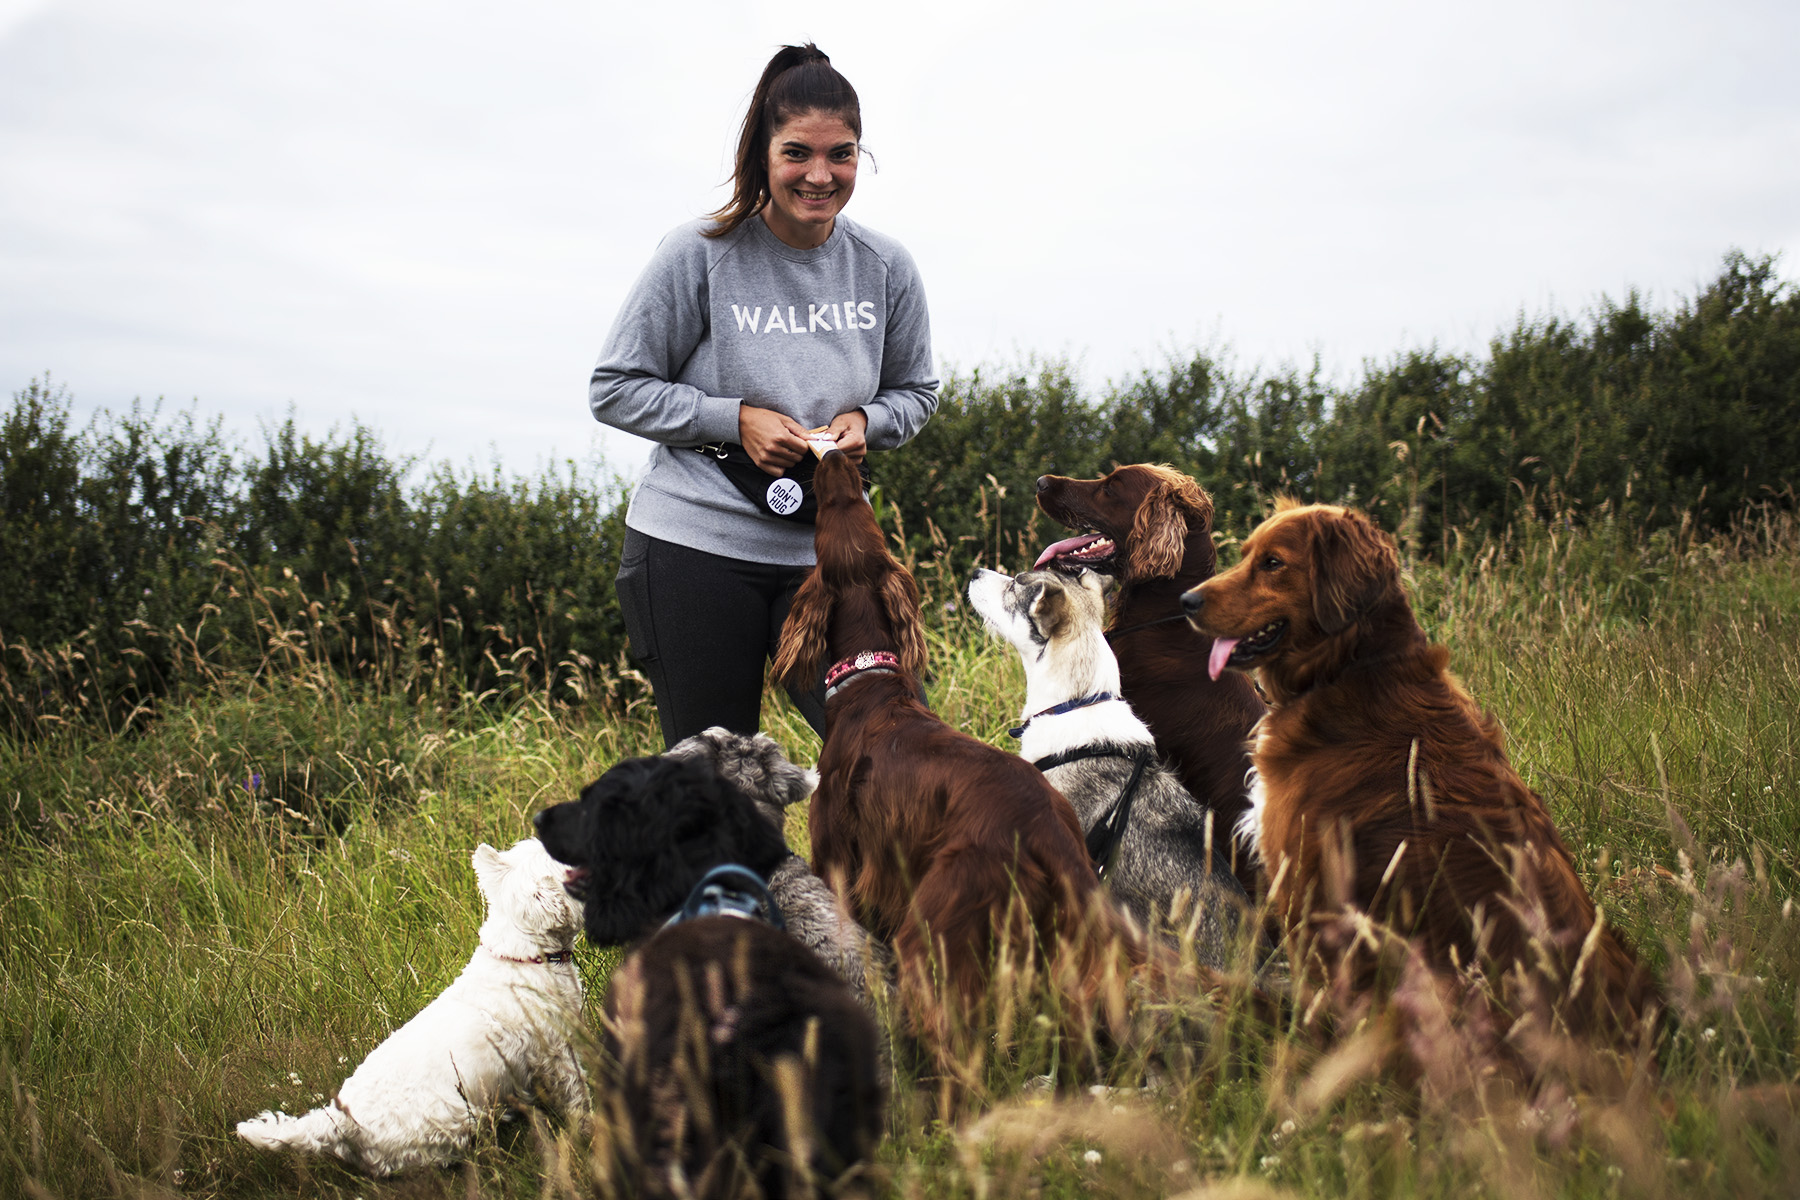 Fran from North Cornwall Dog Walking | The Cornish Dog